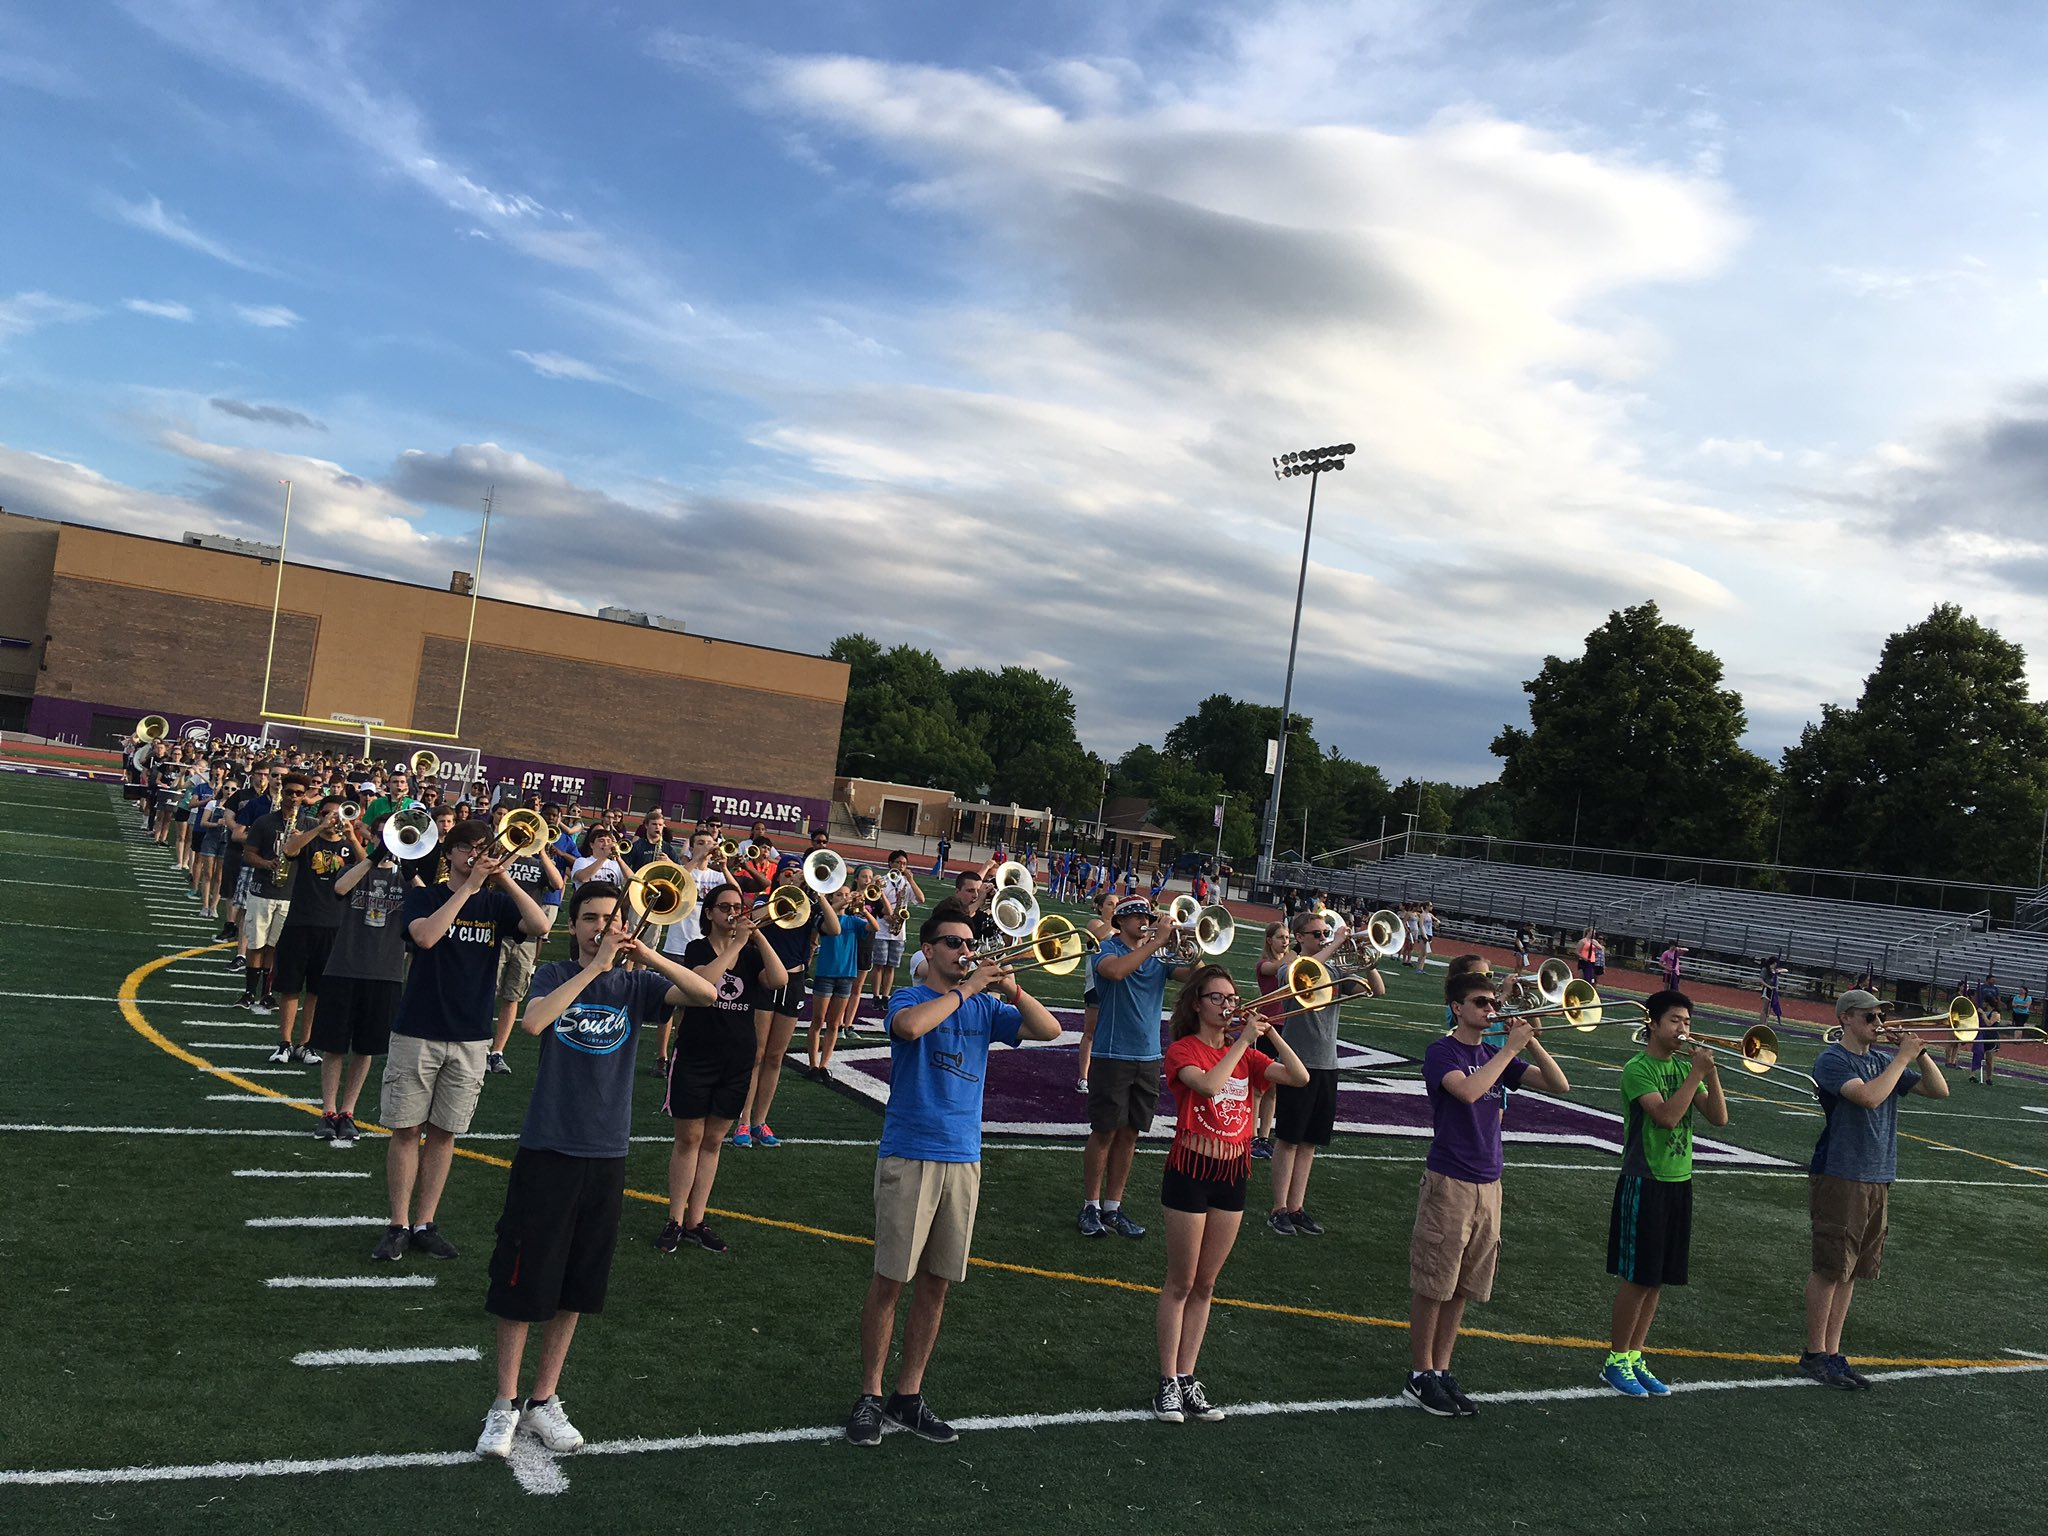 The @Dist_99 Band is looking great as they prepare for the @DownersGroveVlg July 4th Parade! #99Learns https://t.co/ZZSMHCLIL9